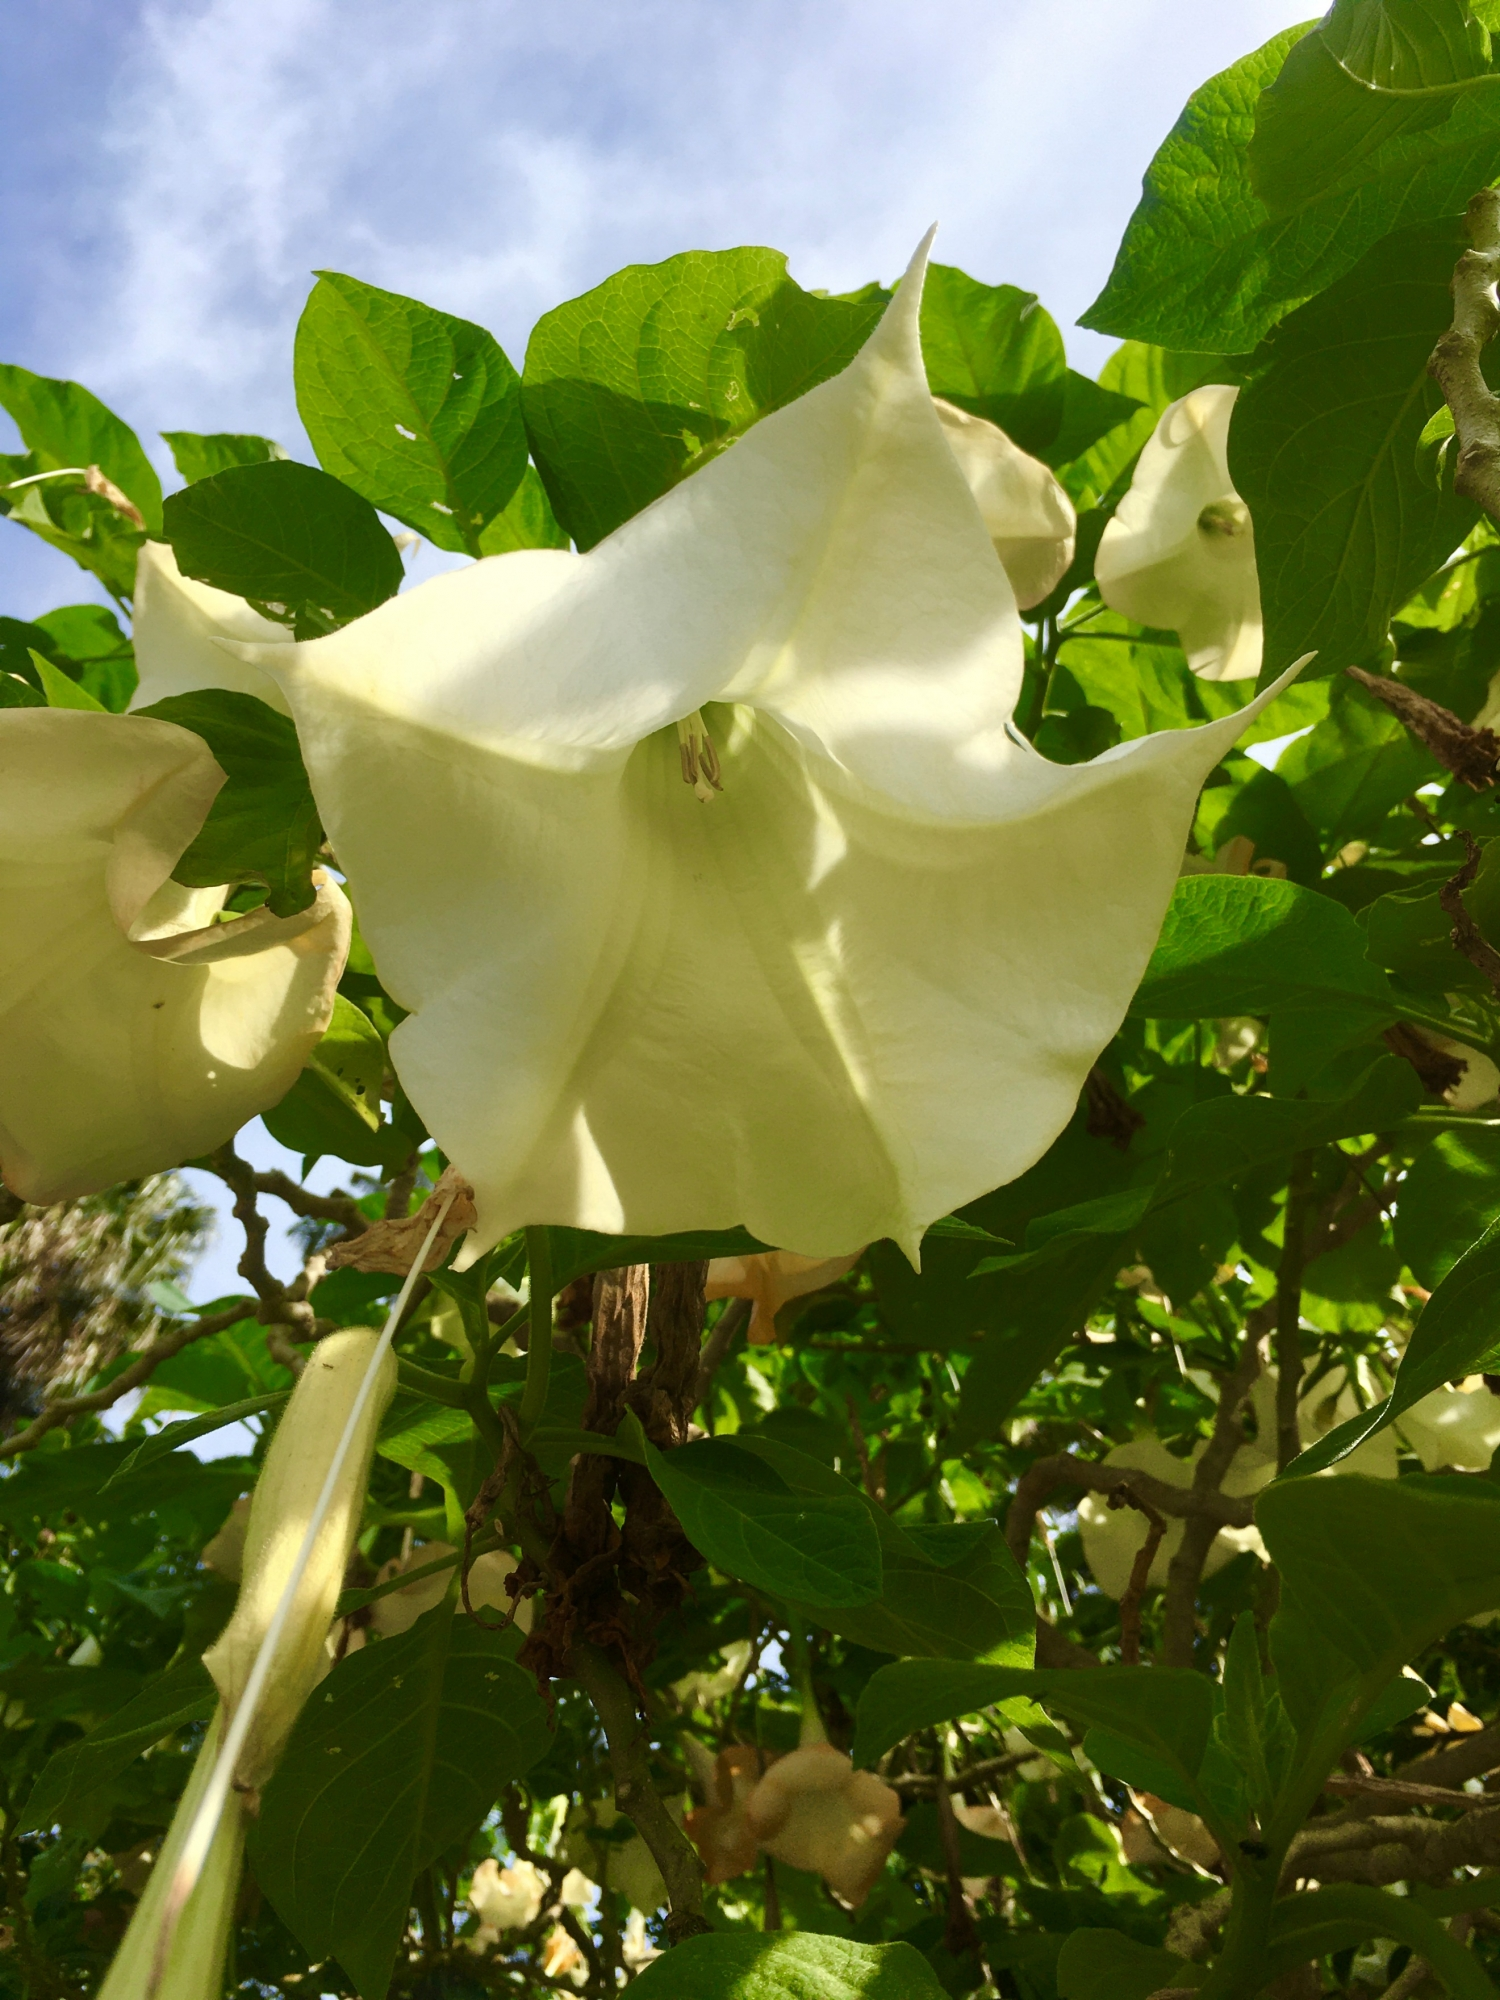 the white centre of the phot is the flower of the Angel's Trumpet plant, with big soft green leaves surrounding it